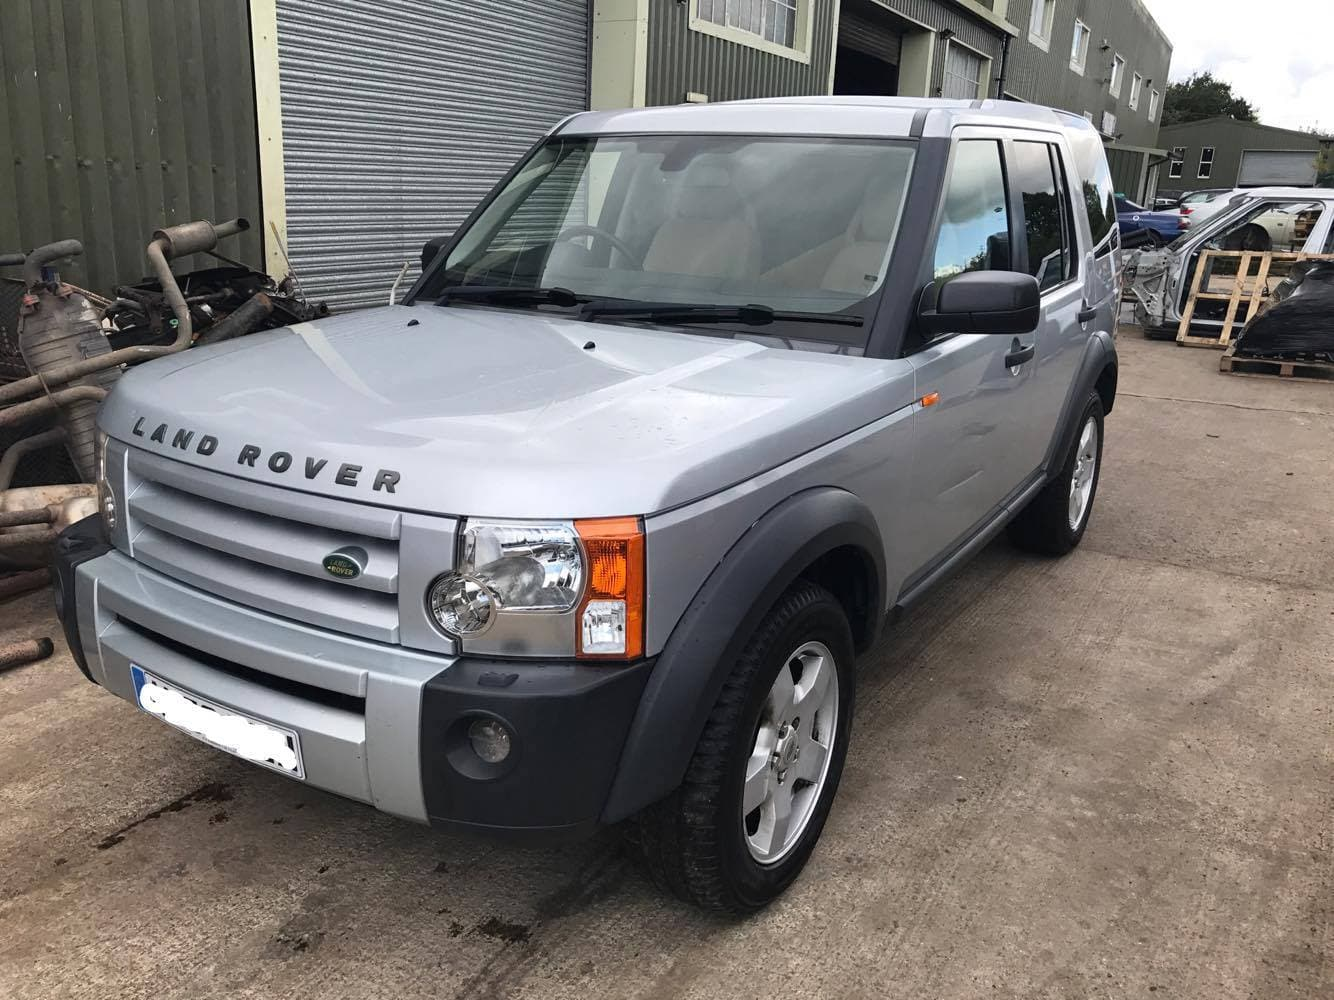 CURRENTLY BREAKING    2006 LAND ROVER DISCOVERY 3 - 2 7 TDV6